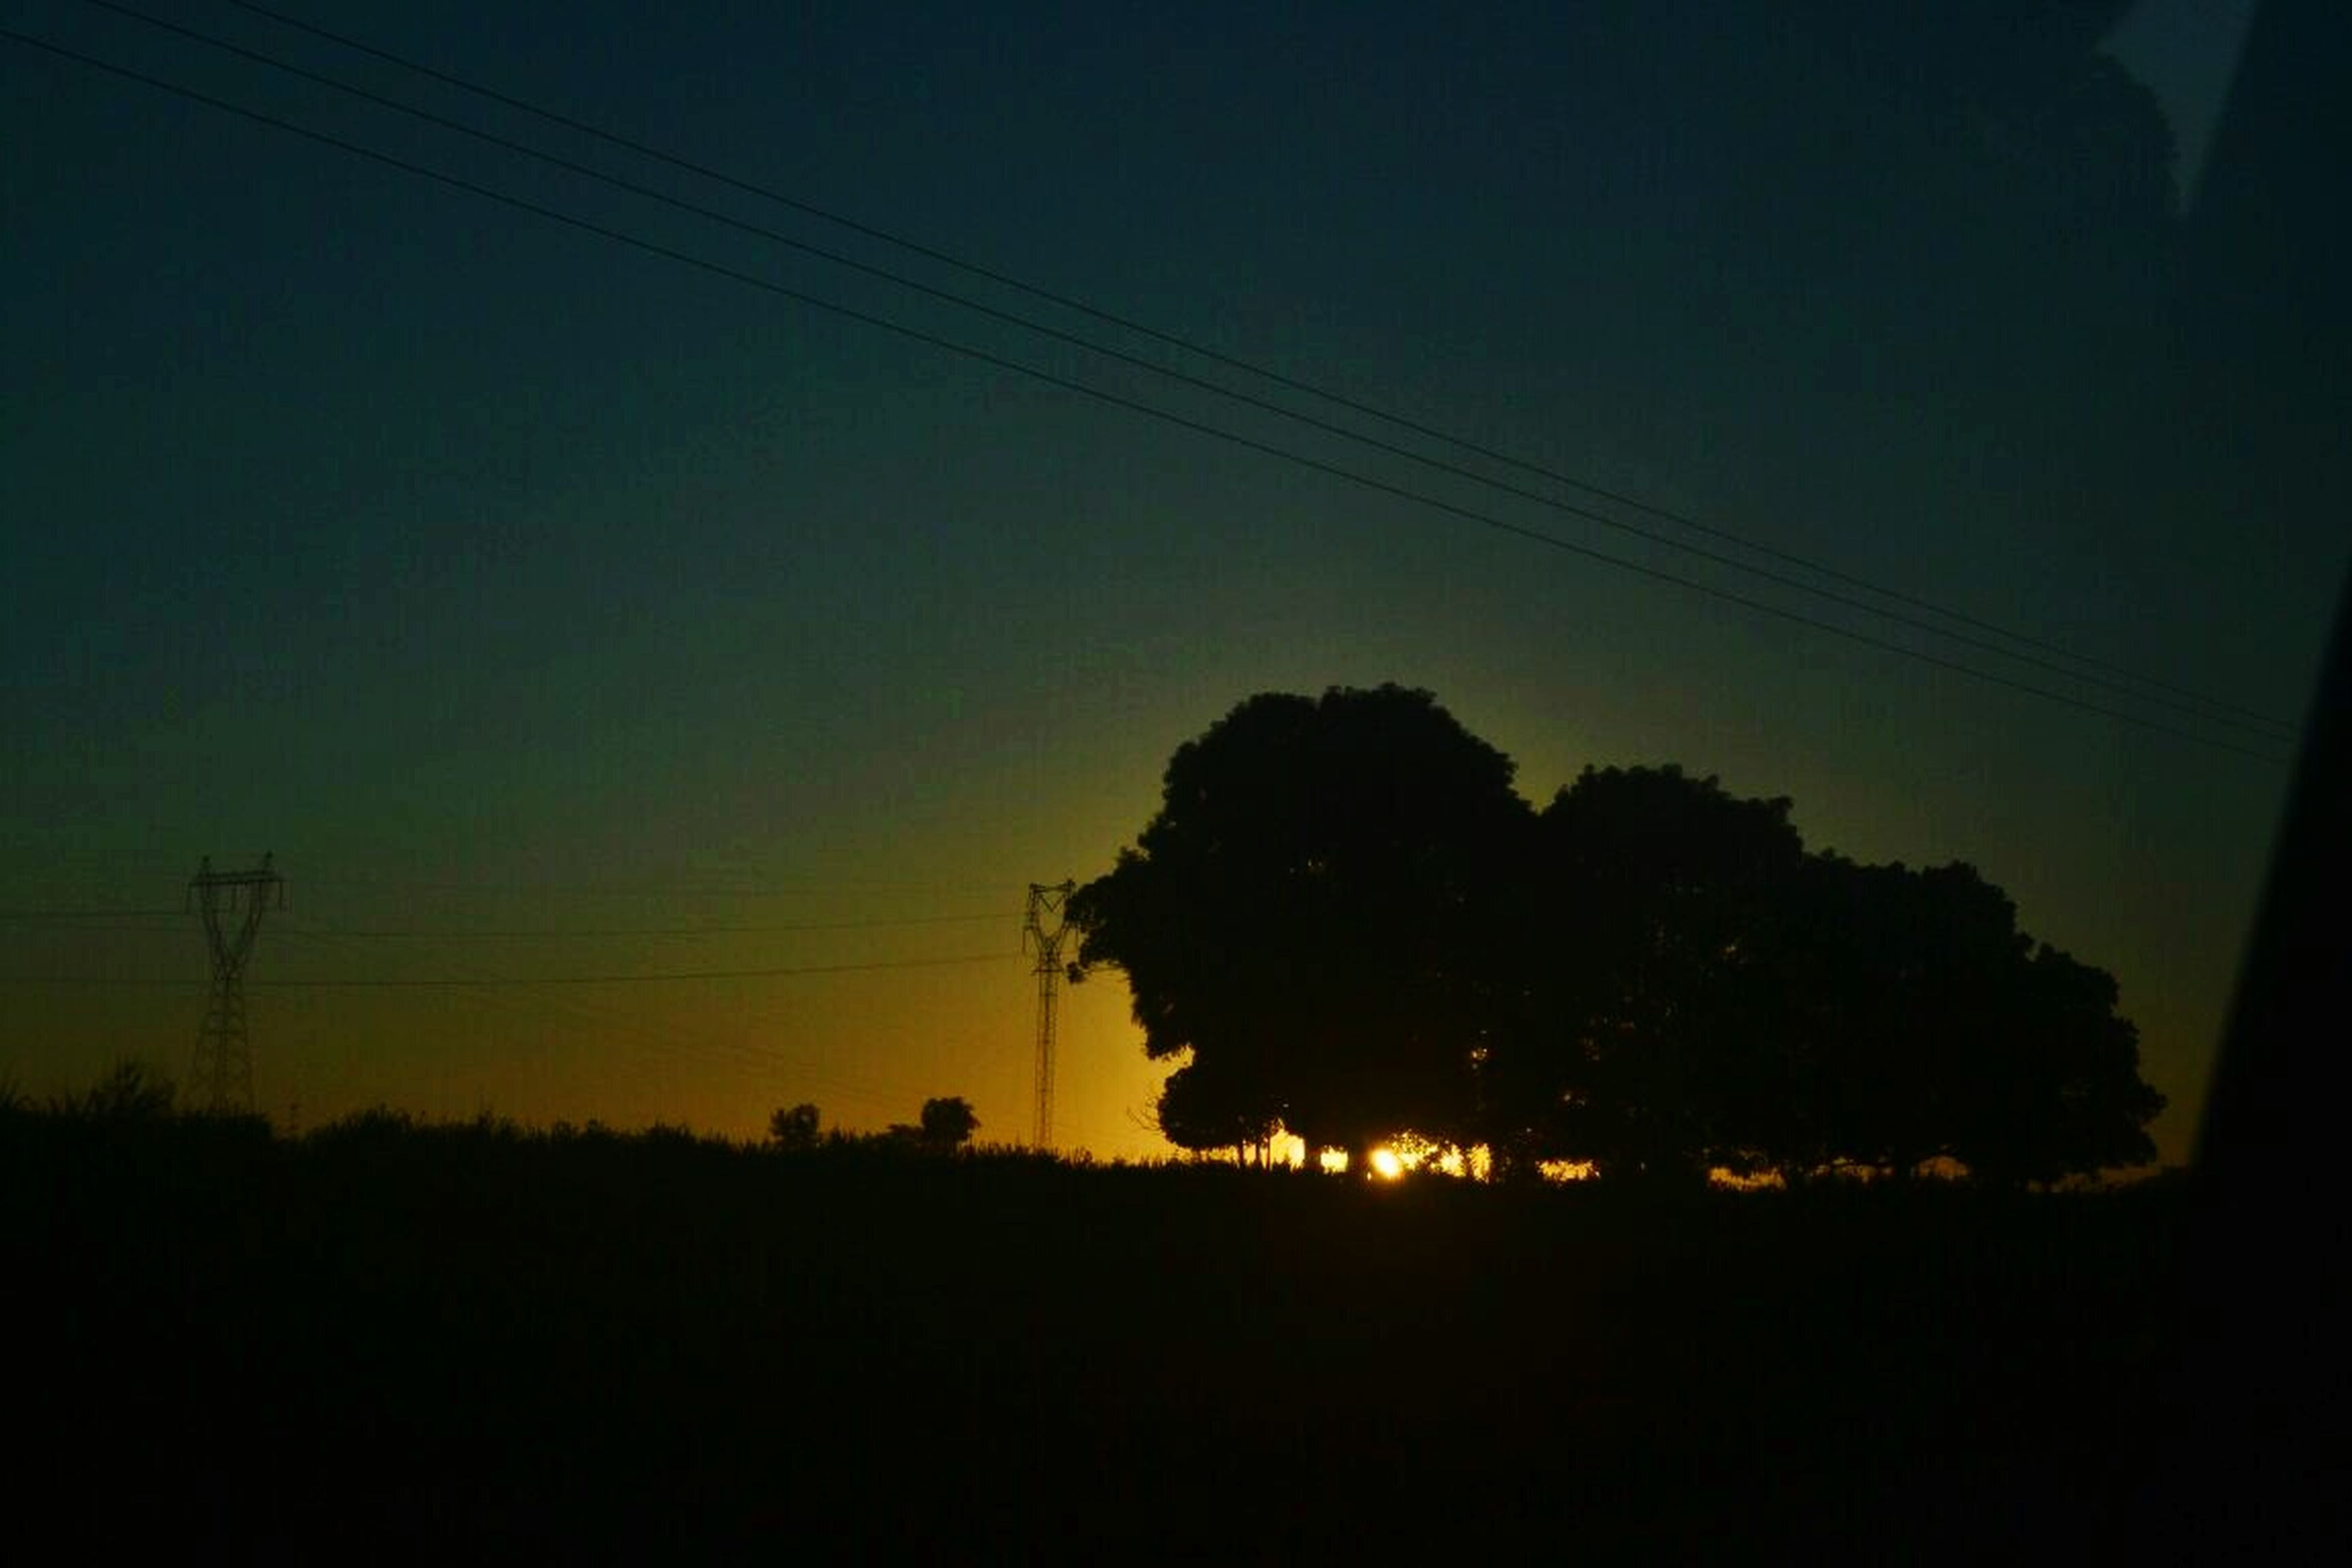 silhouette, power line, electricity pylon, electricity, power supply, tree, sunset, tranquility, tranquil scene, sky, cable, landscape, scenics, nature, beauty in nature, dark, dusk, copy space, connection, field